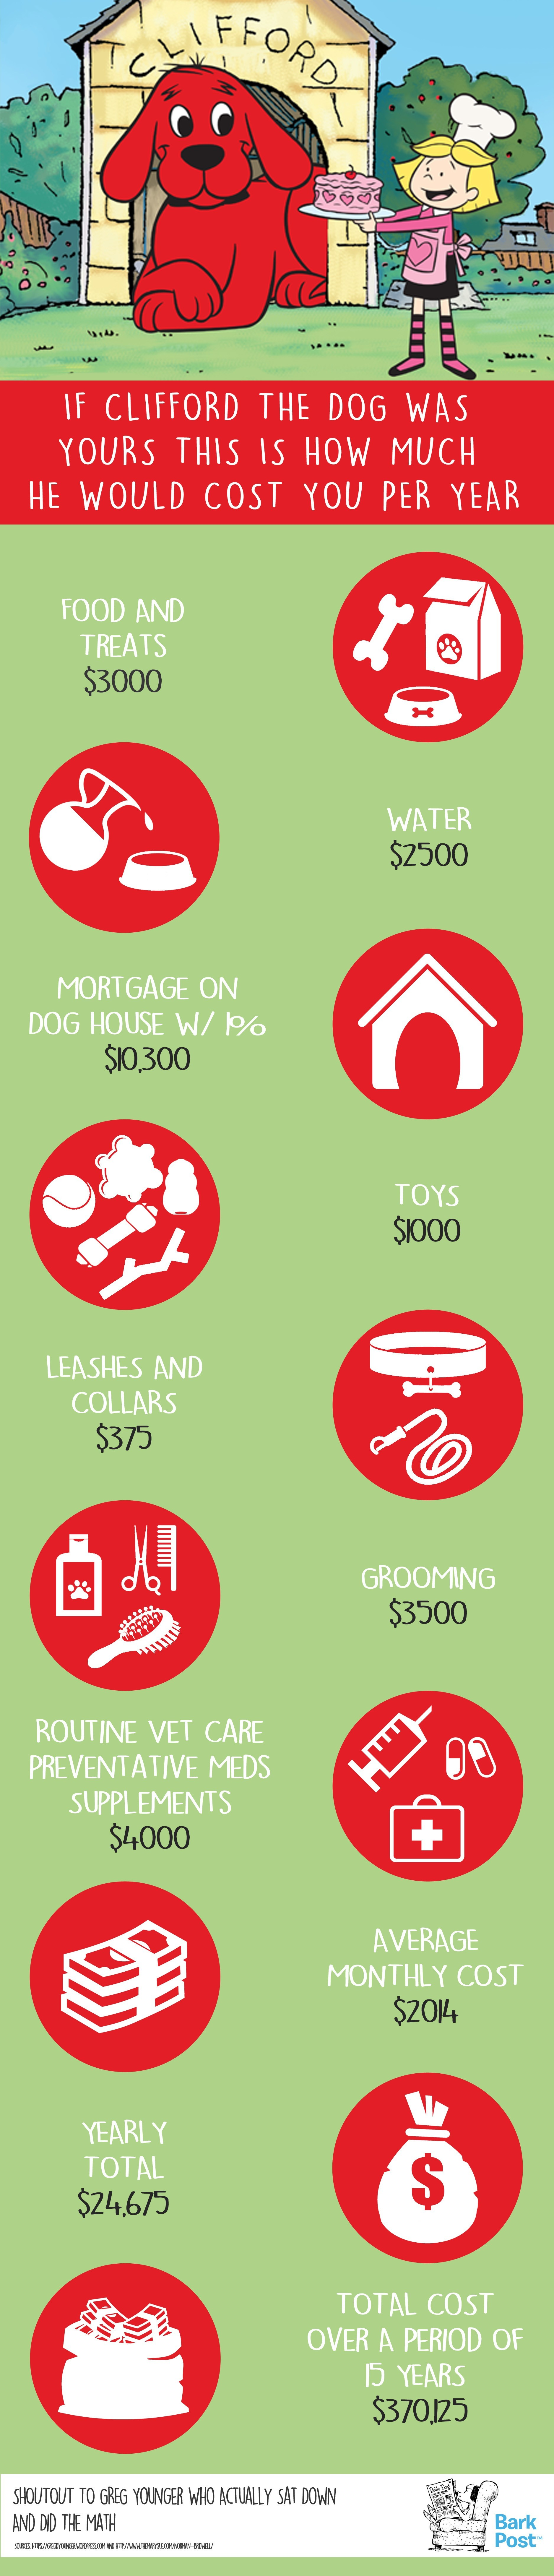 Brilliant Chart Breaks Down How Much Clifford Would Cost